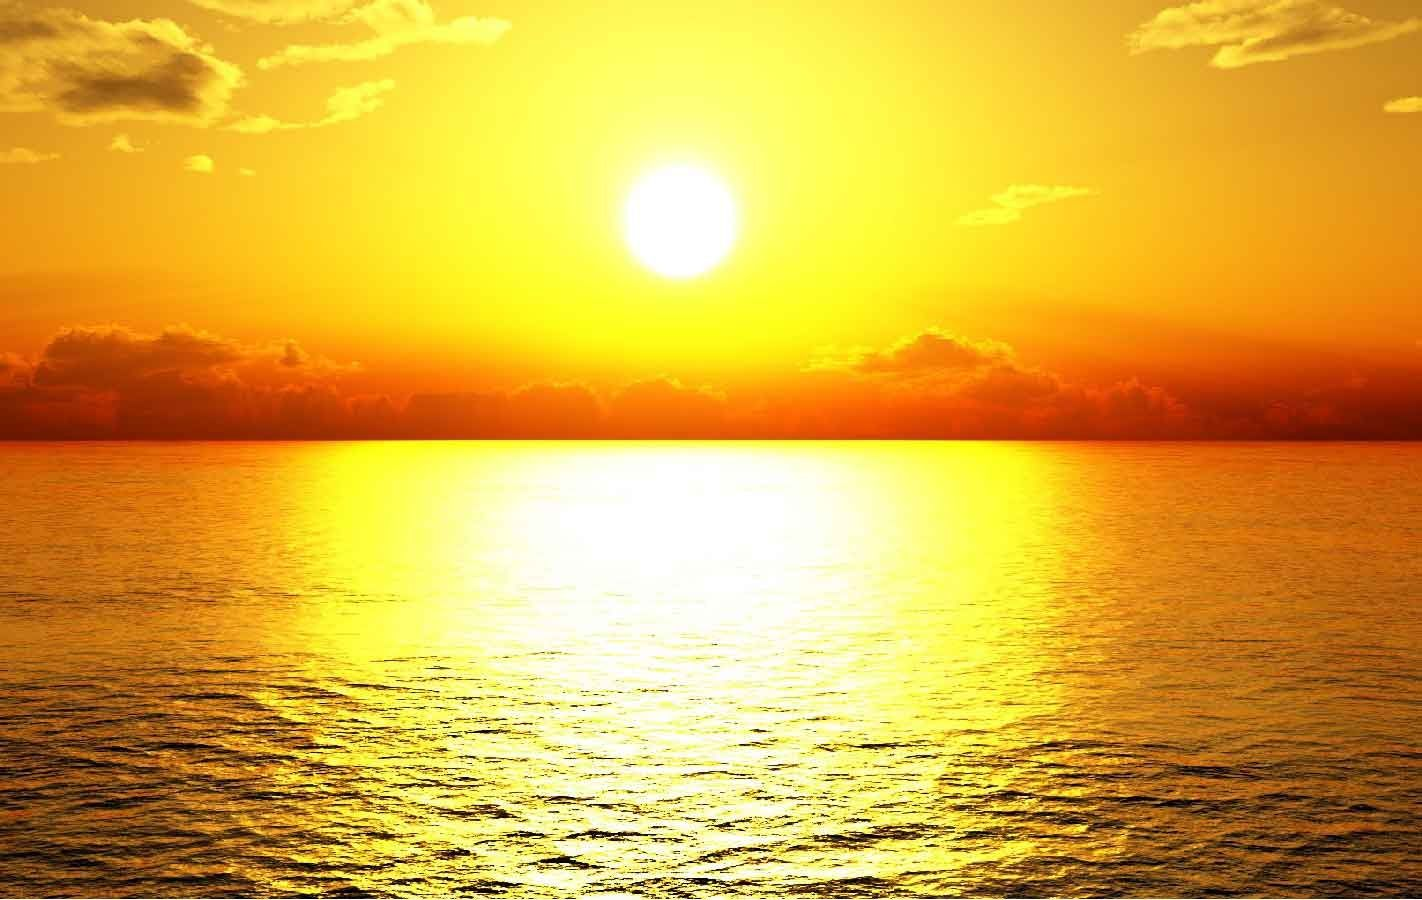 psychedelic-trance-festival-fashion-clothing-sol-seed-of-life--solstice-sun-setting-over-water-by-aphexii